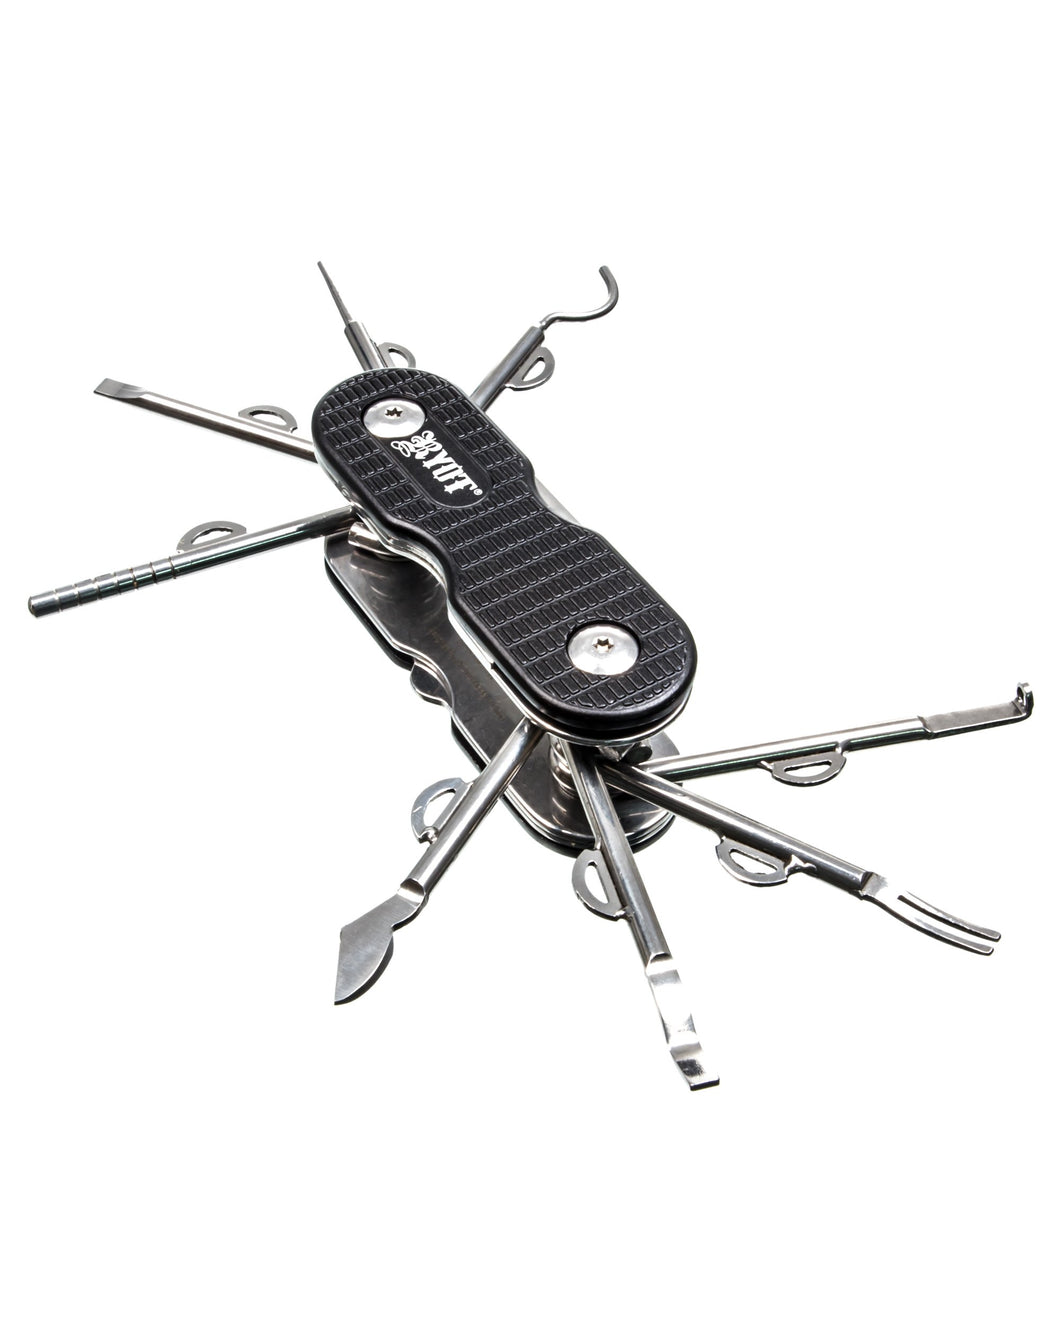 Stainless Steel Multi-Utility Tool for $48.99 at Weedcommerce Marketplace